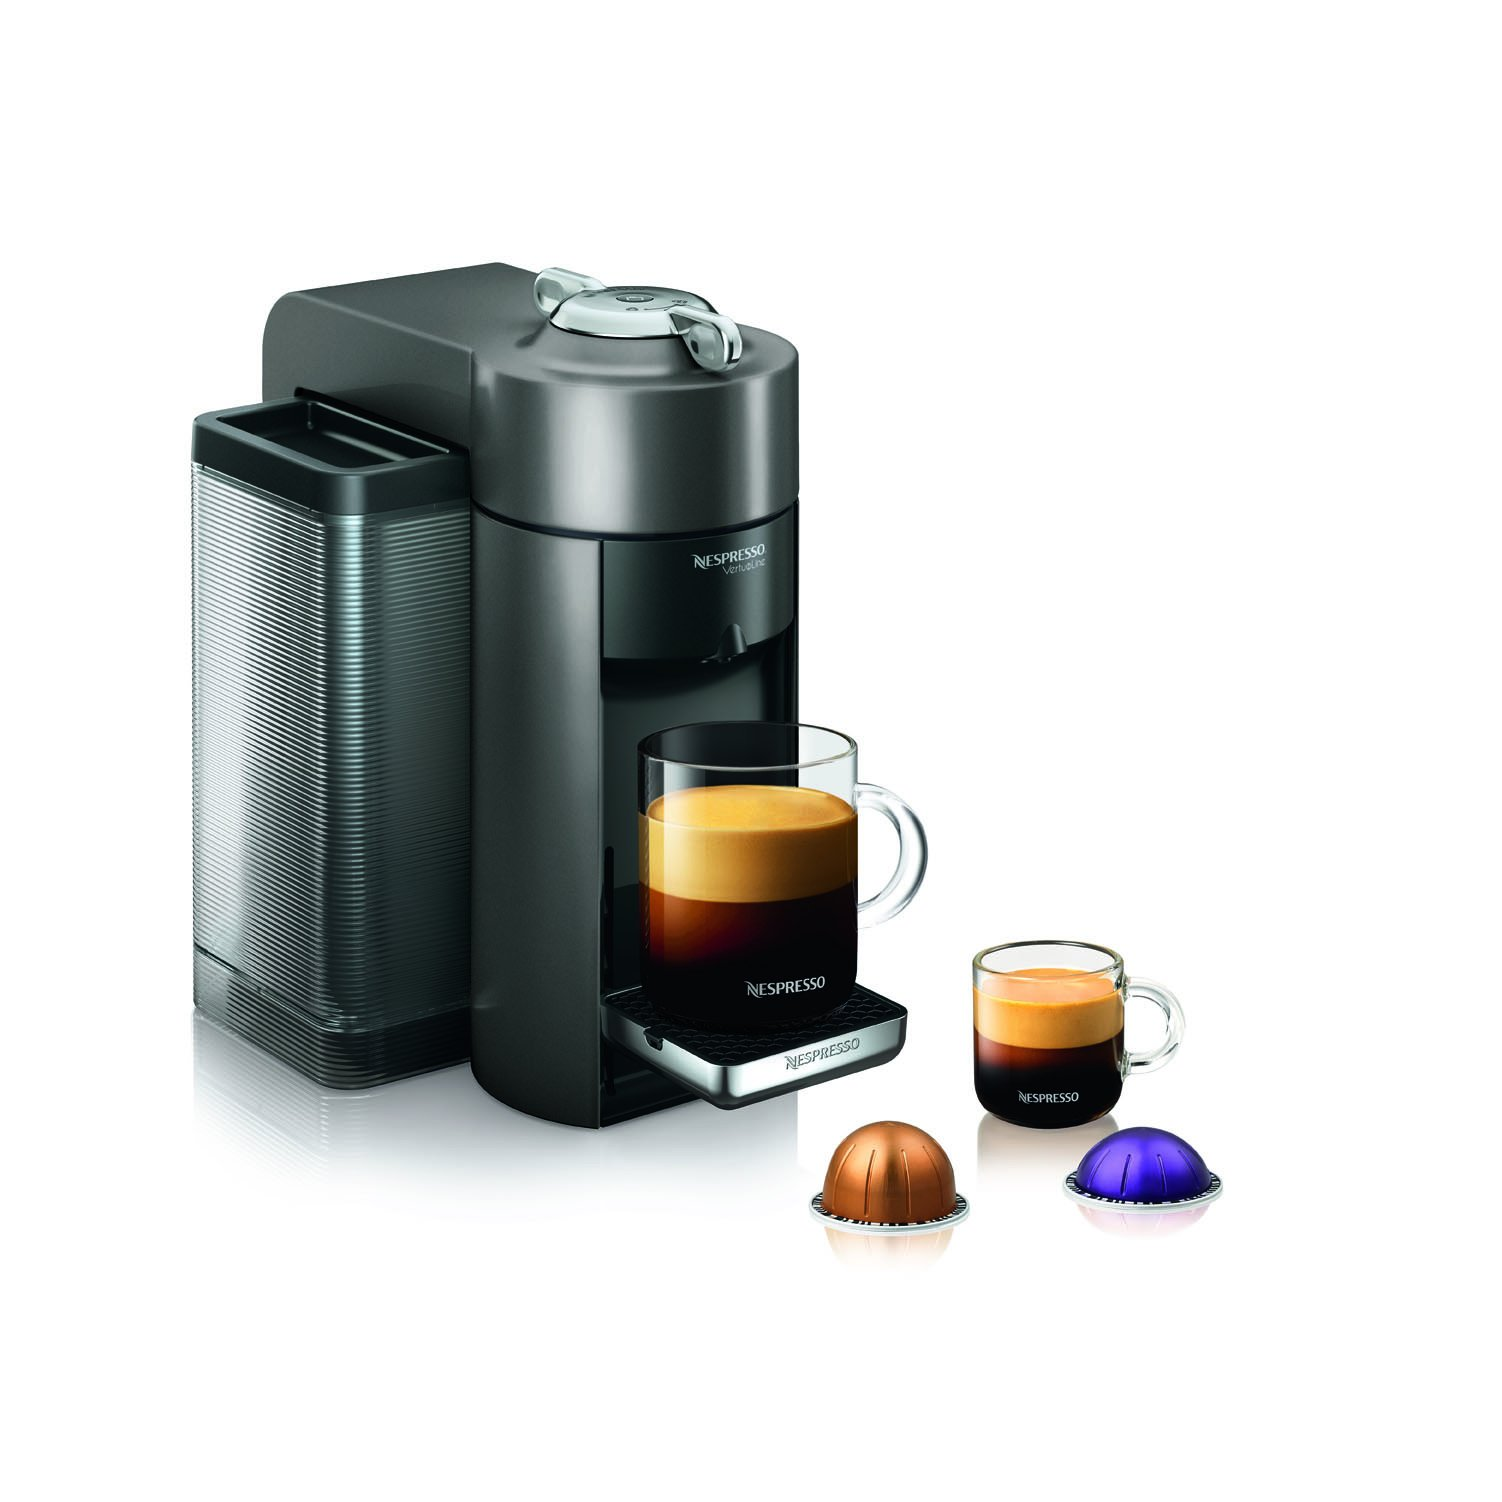 Nespresso GCC1-US-GM-NE VertuoLine Evoluo Deluxe Coffee and Espresso Maker, Graphite Metal (Discontinued Model) by Nespresso (Image #1)